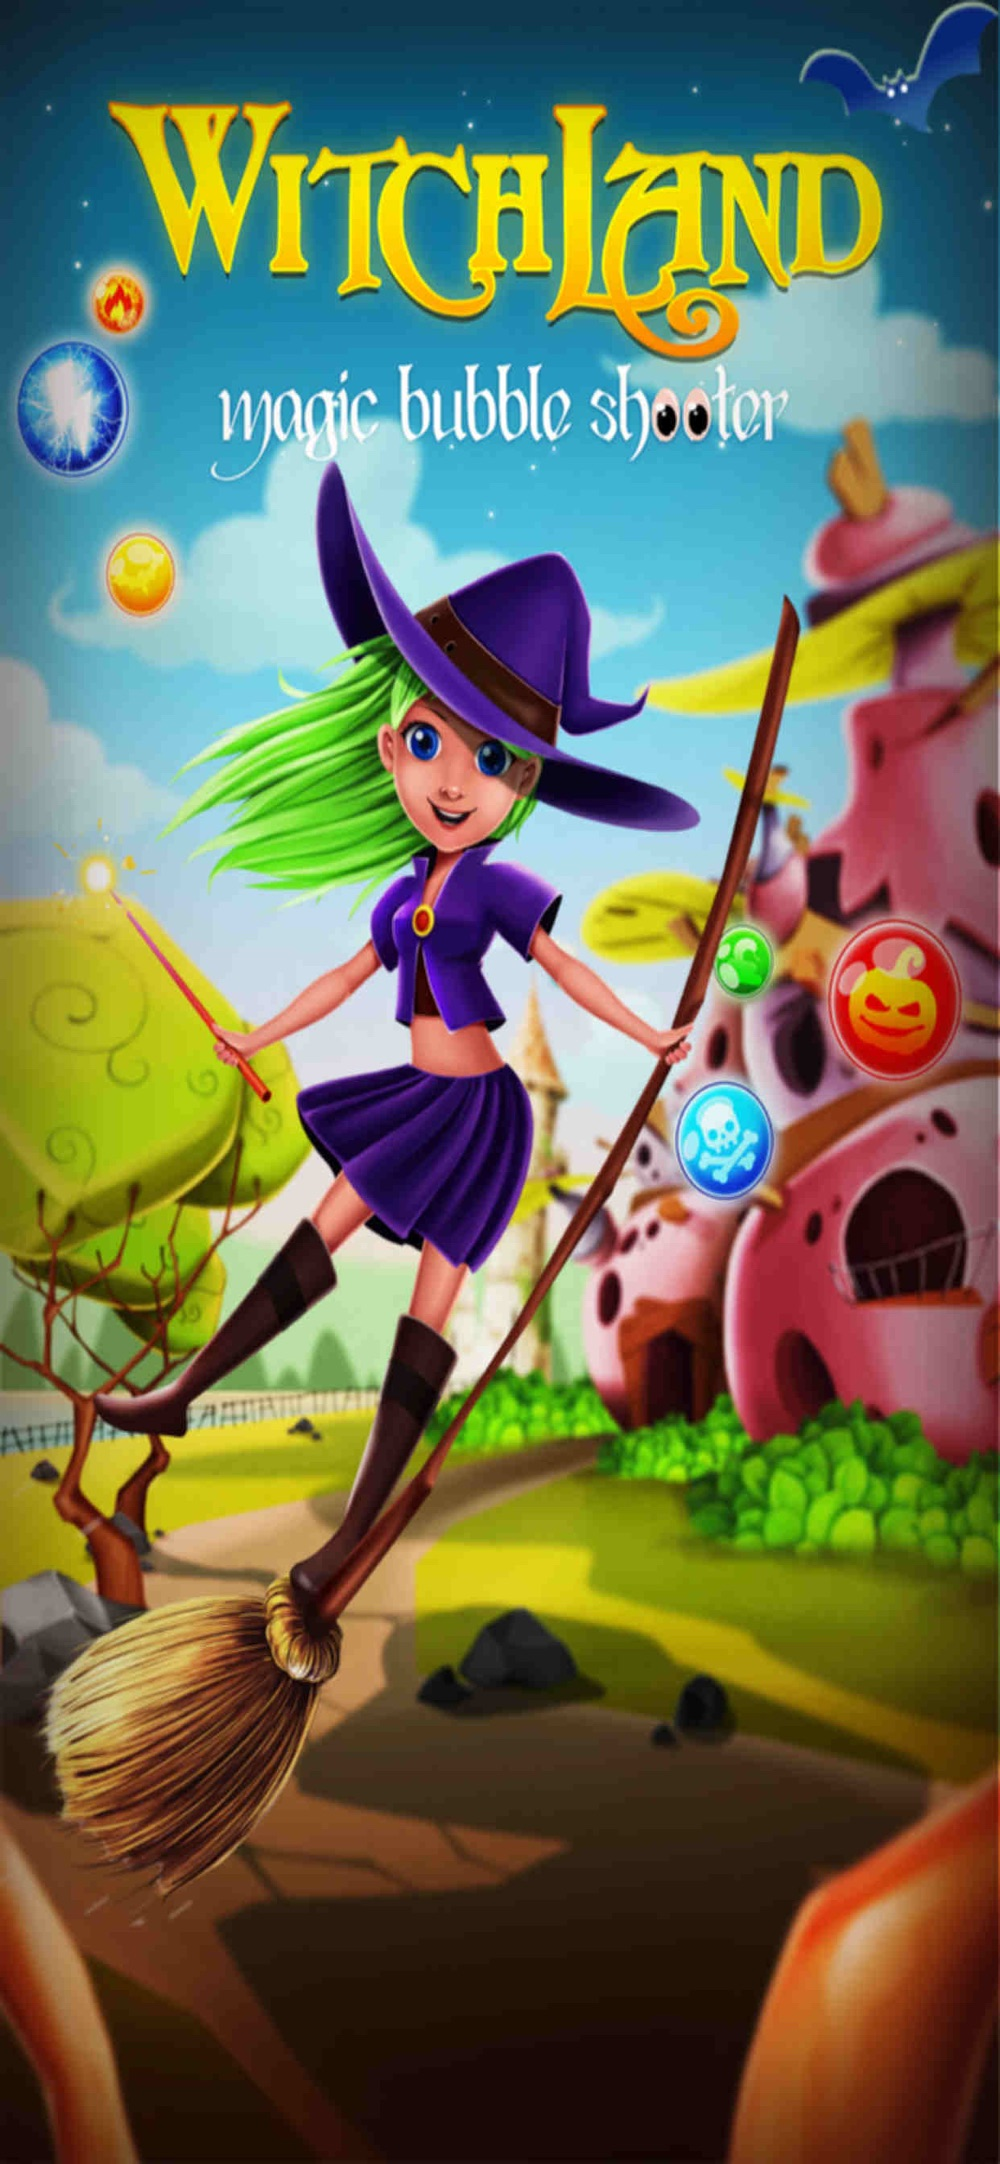 WitchLand: Bubble Shooter cheat codes